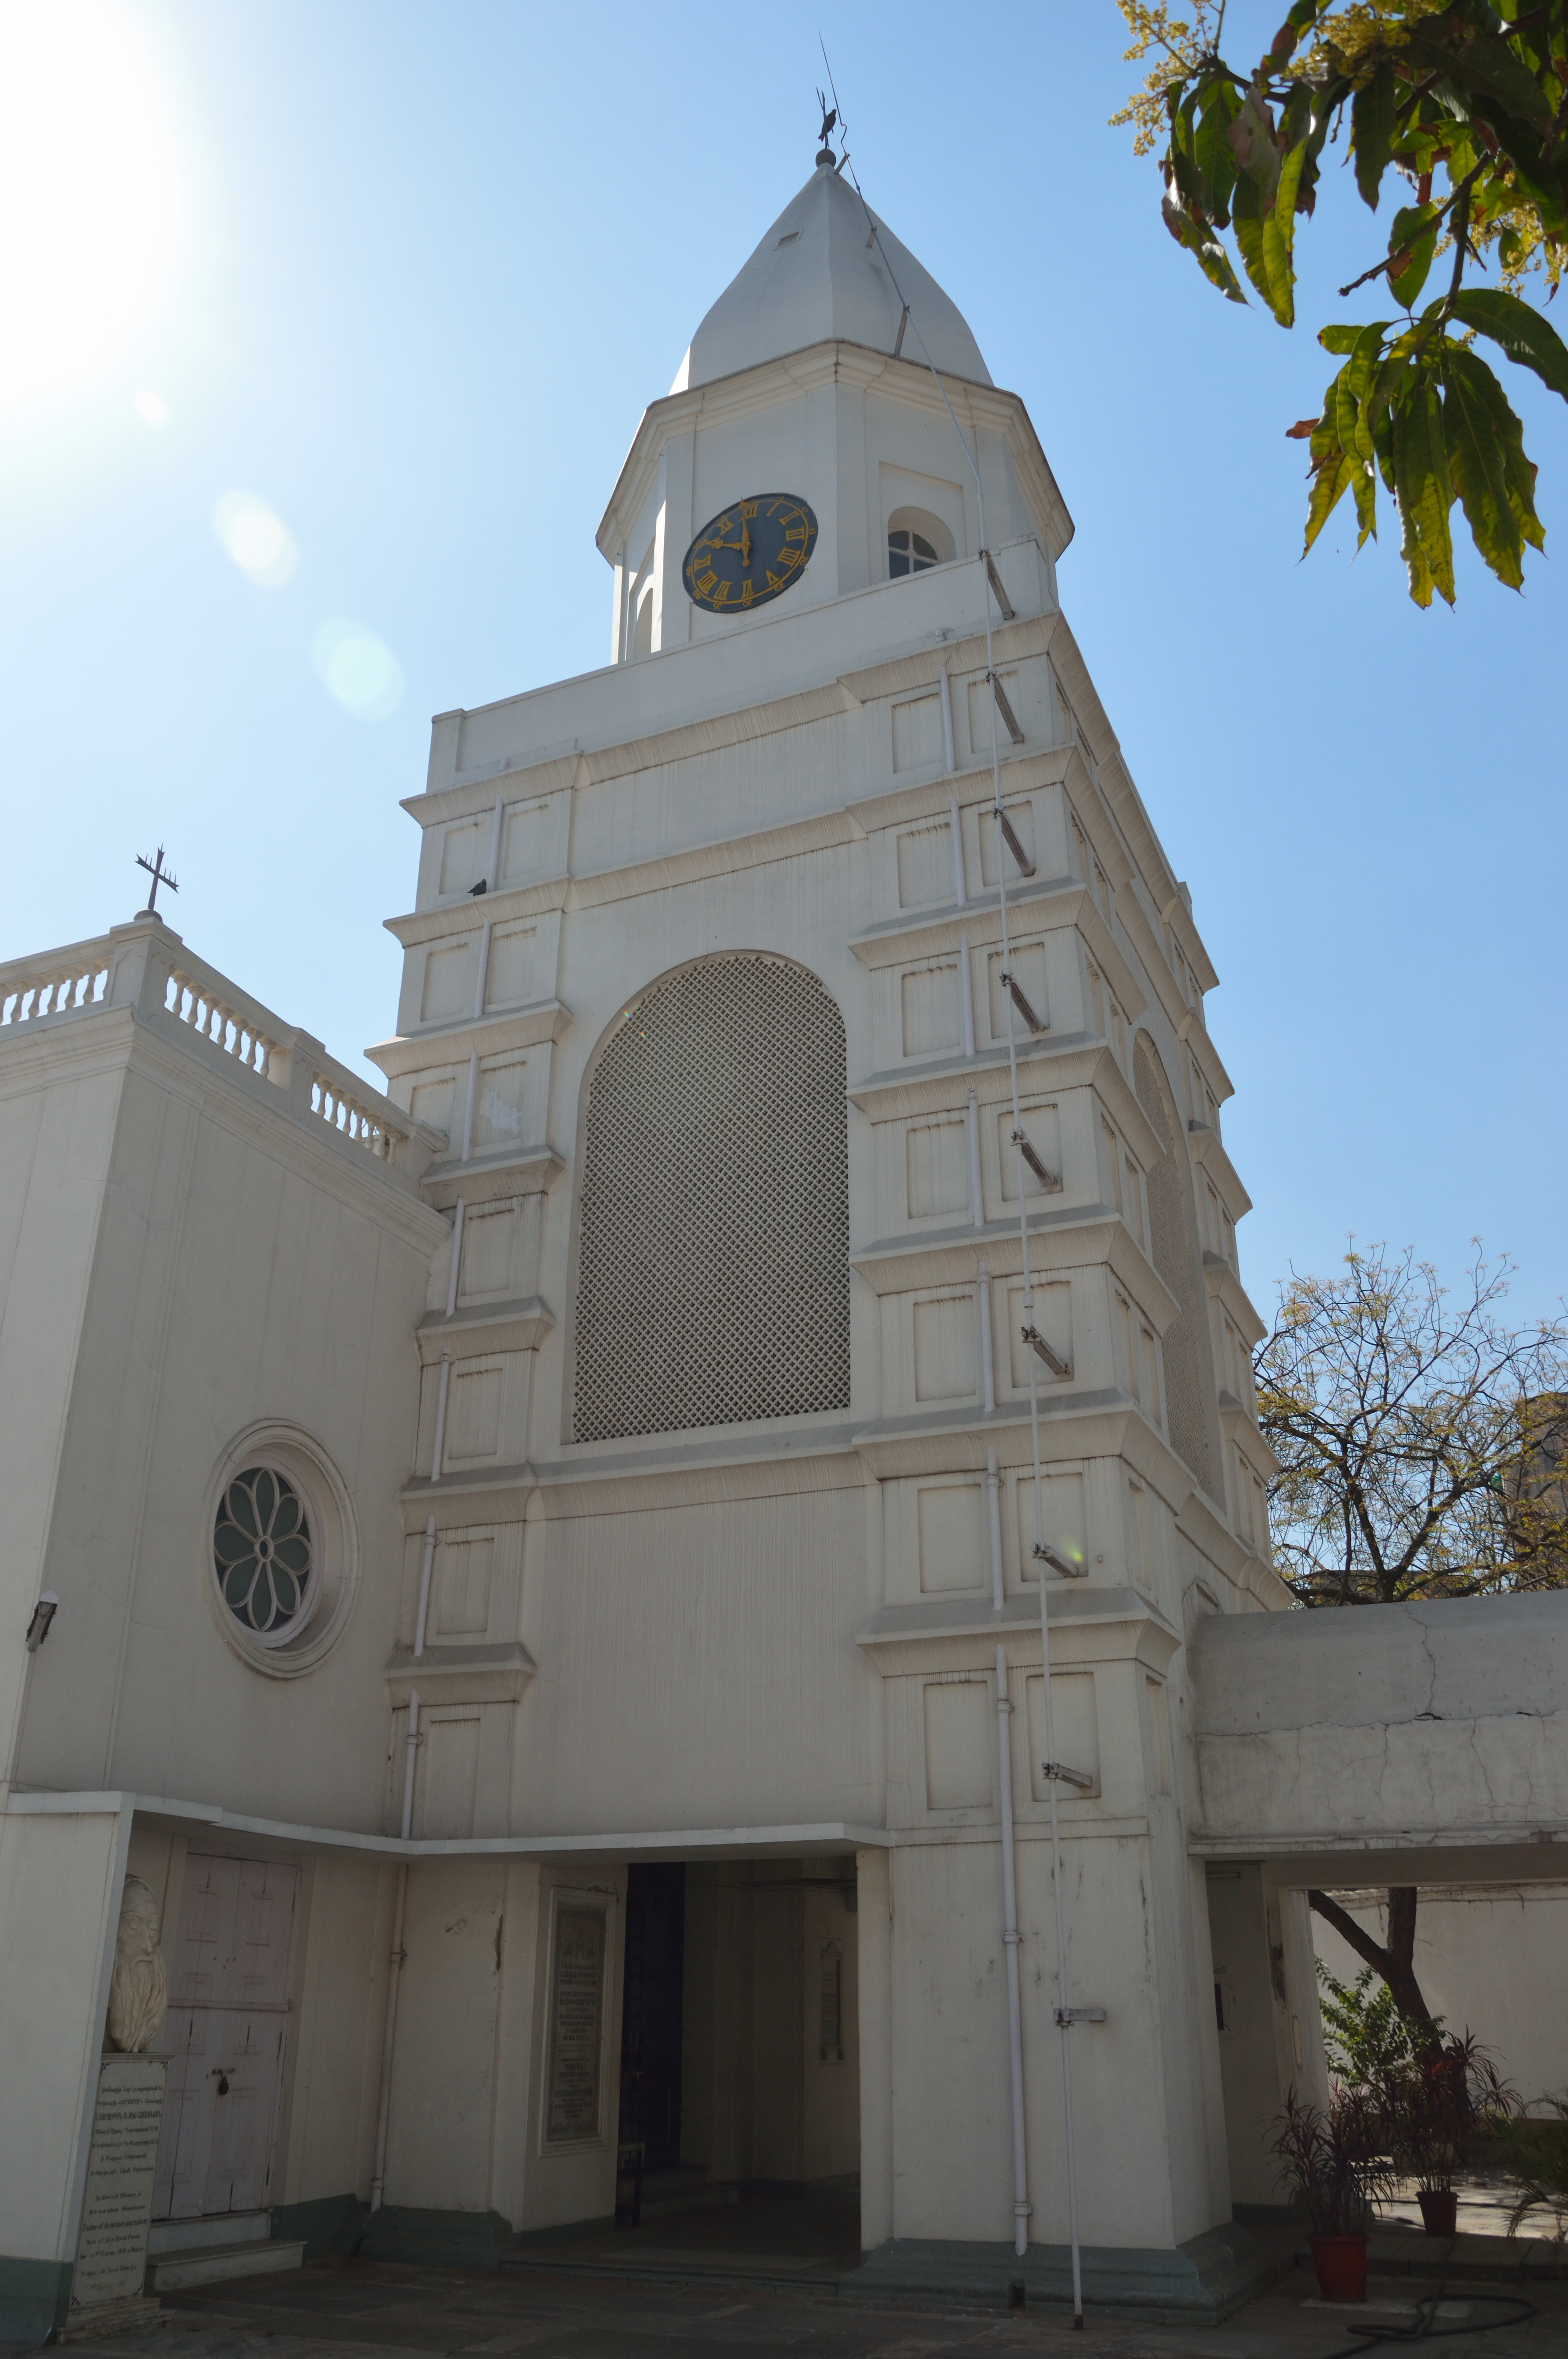 The clock tower at the Armenian Holy Church of Nazareth, Calcutta (Kolkata), early 18th century